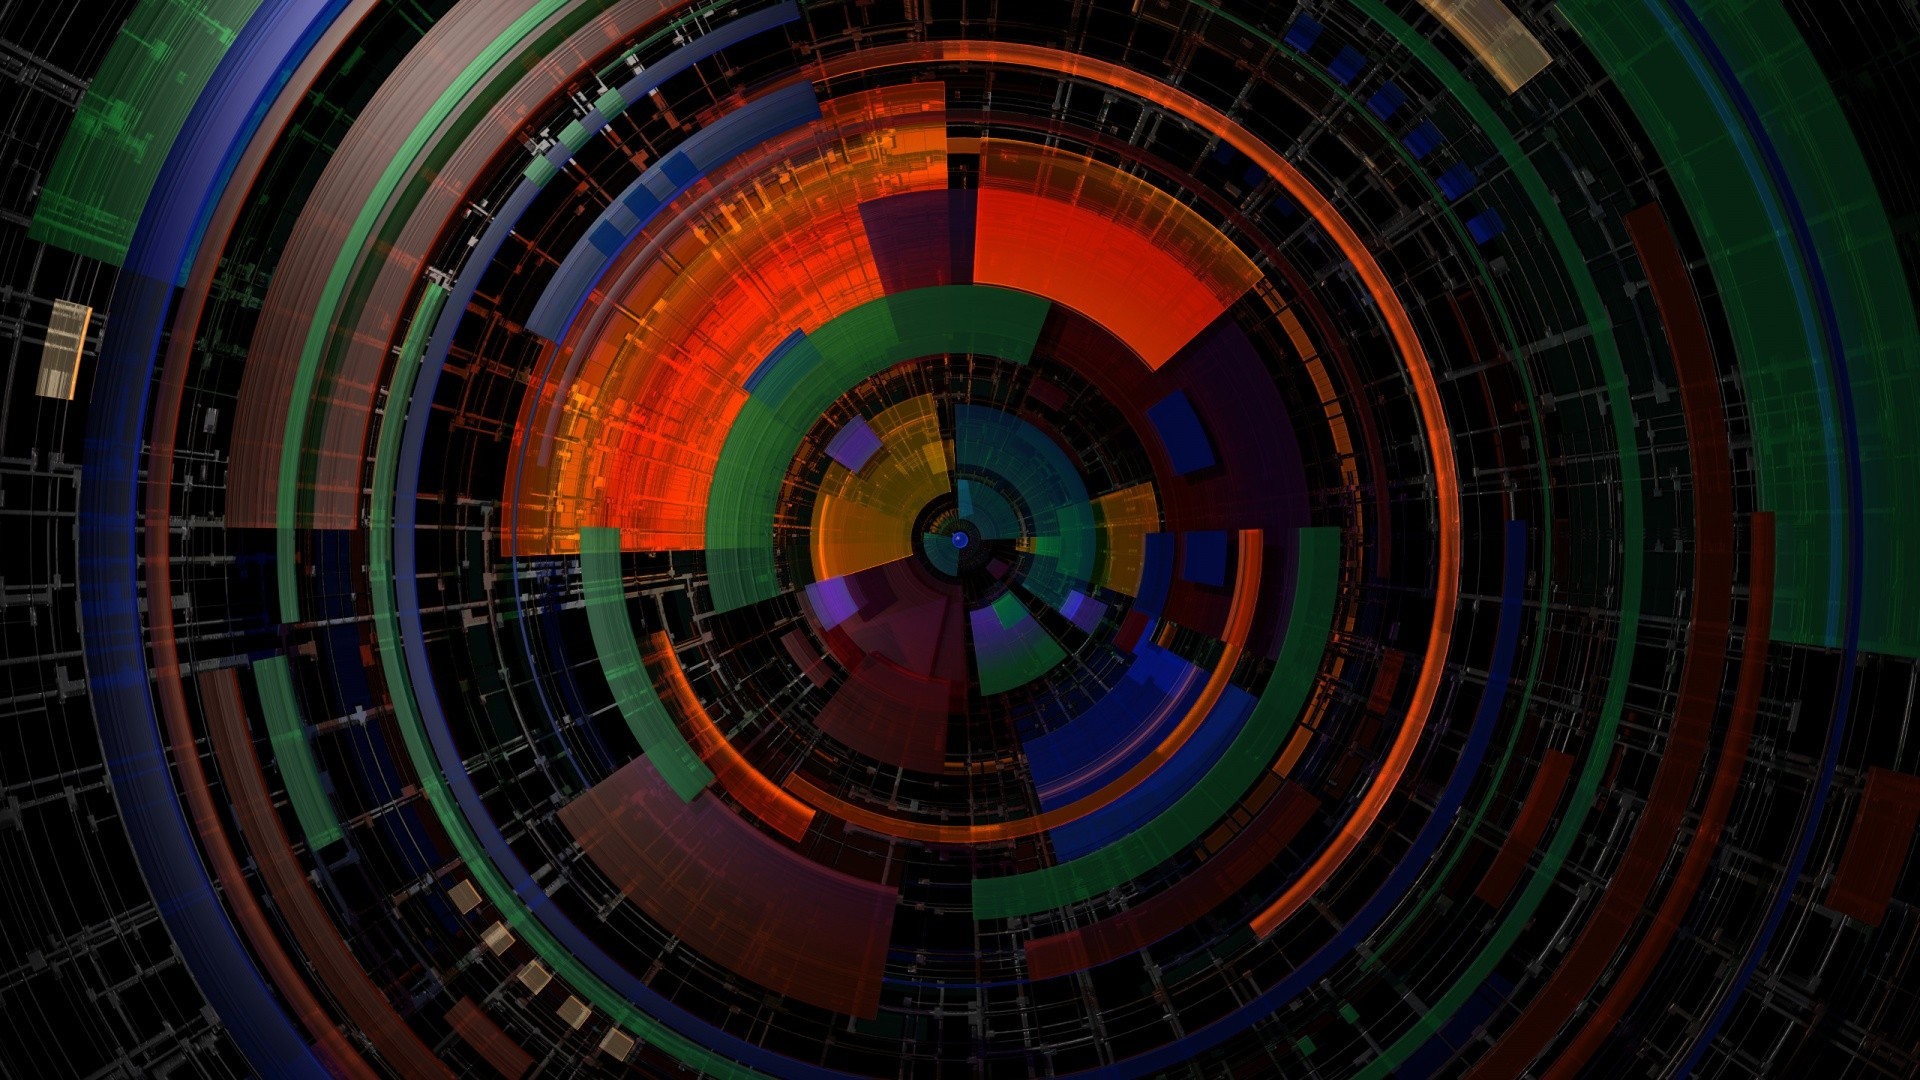 General 1920x1080 circle symmetry digital art colorful lines abstract